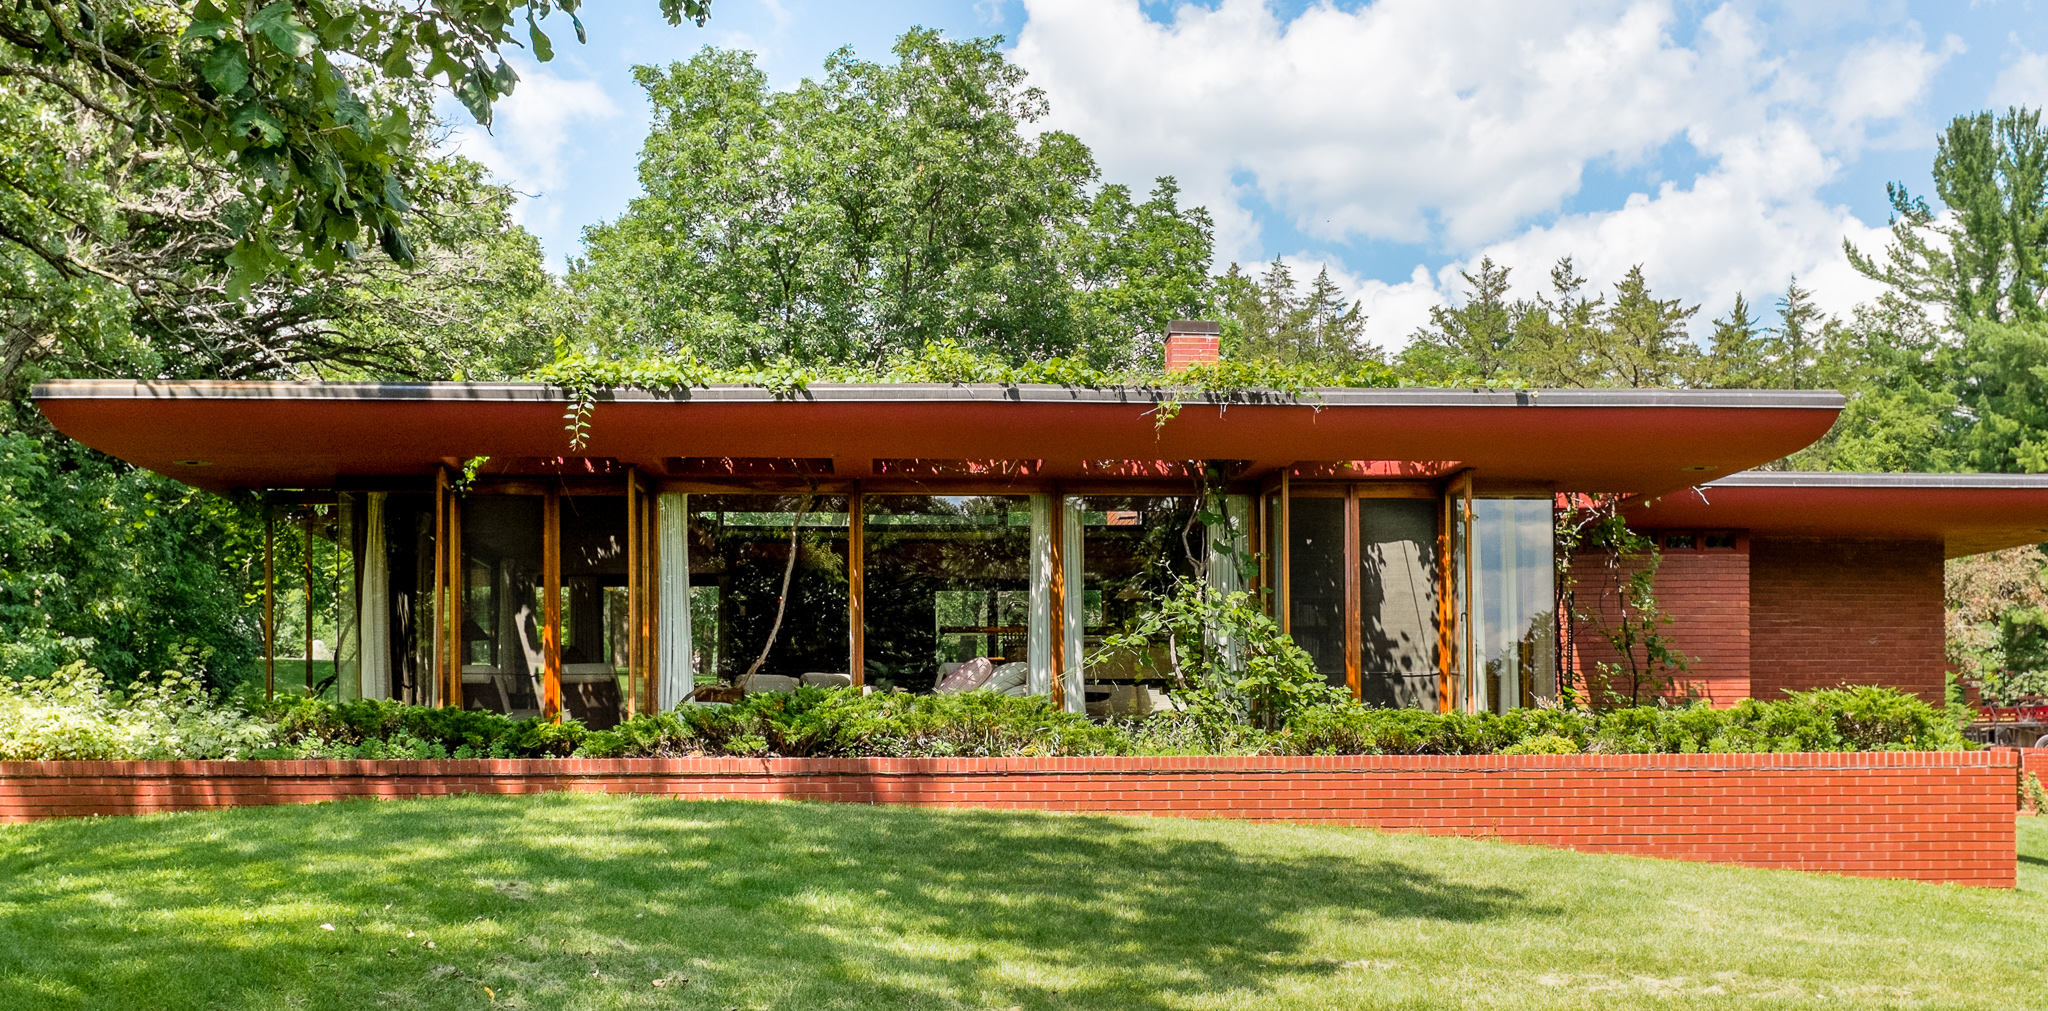 Cedar Rock (Lowell Walter House), 1948, Frank Lloyd Wright — a Usonian house